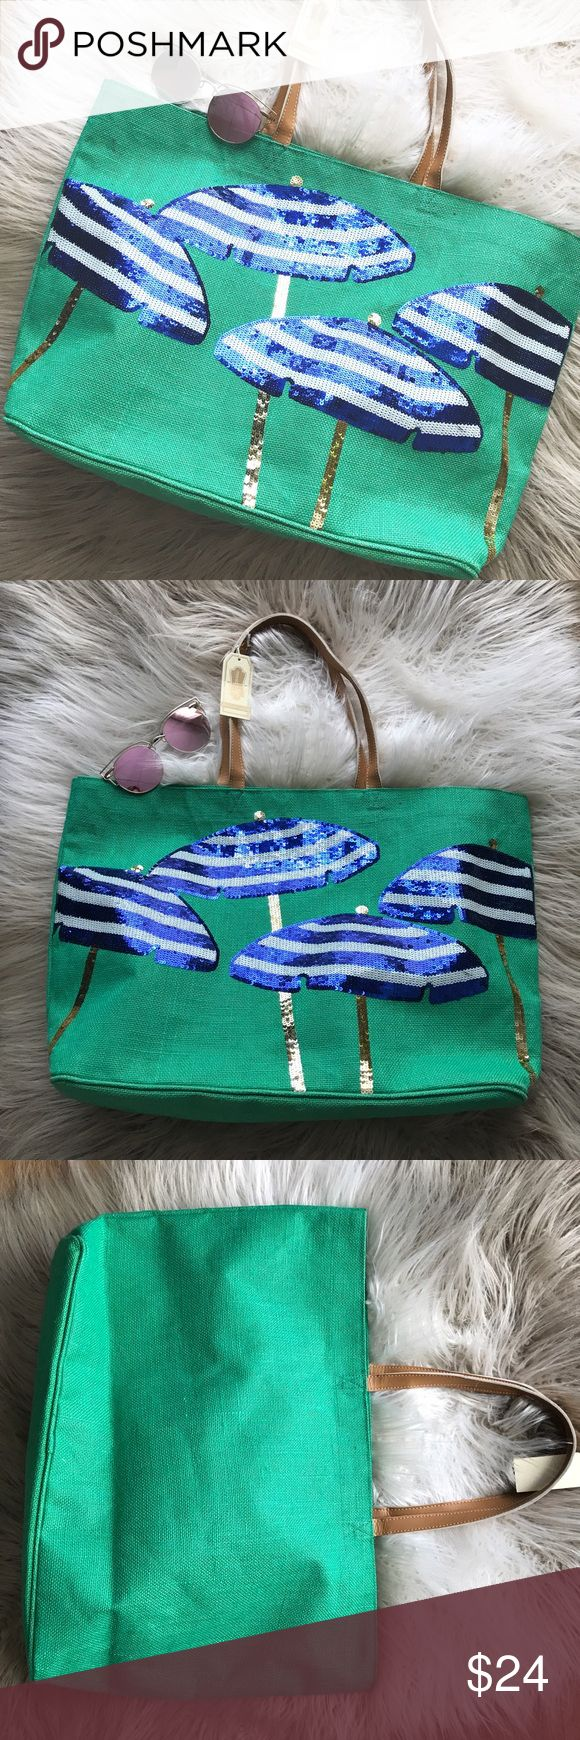 """NWT Mud Pie Sequin Umbrella Beach Tote Bag Super cute beach bag or just all around Tote Bag! Green jute material bag with blue and white Sequin umbrellas. New with tags, unused! Dimensions: 14 1/2"""" x 22"""" x 6 1/2"""". Spot clean only. This design is not available anymore! Mud Pie Bags Totes"""